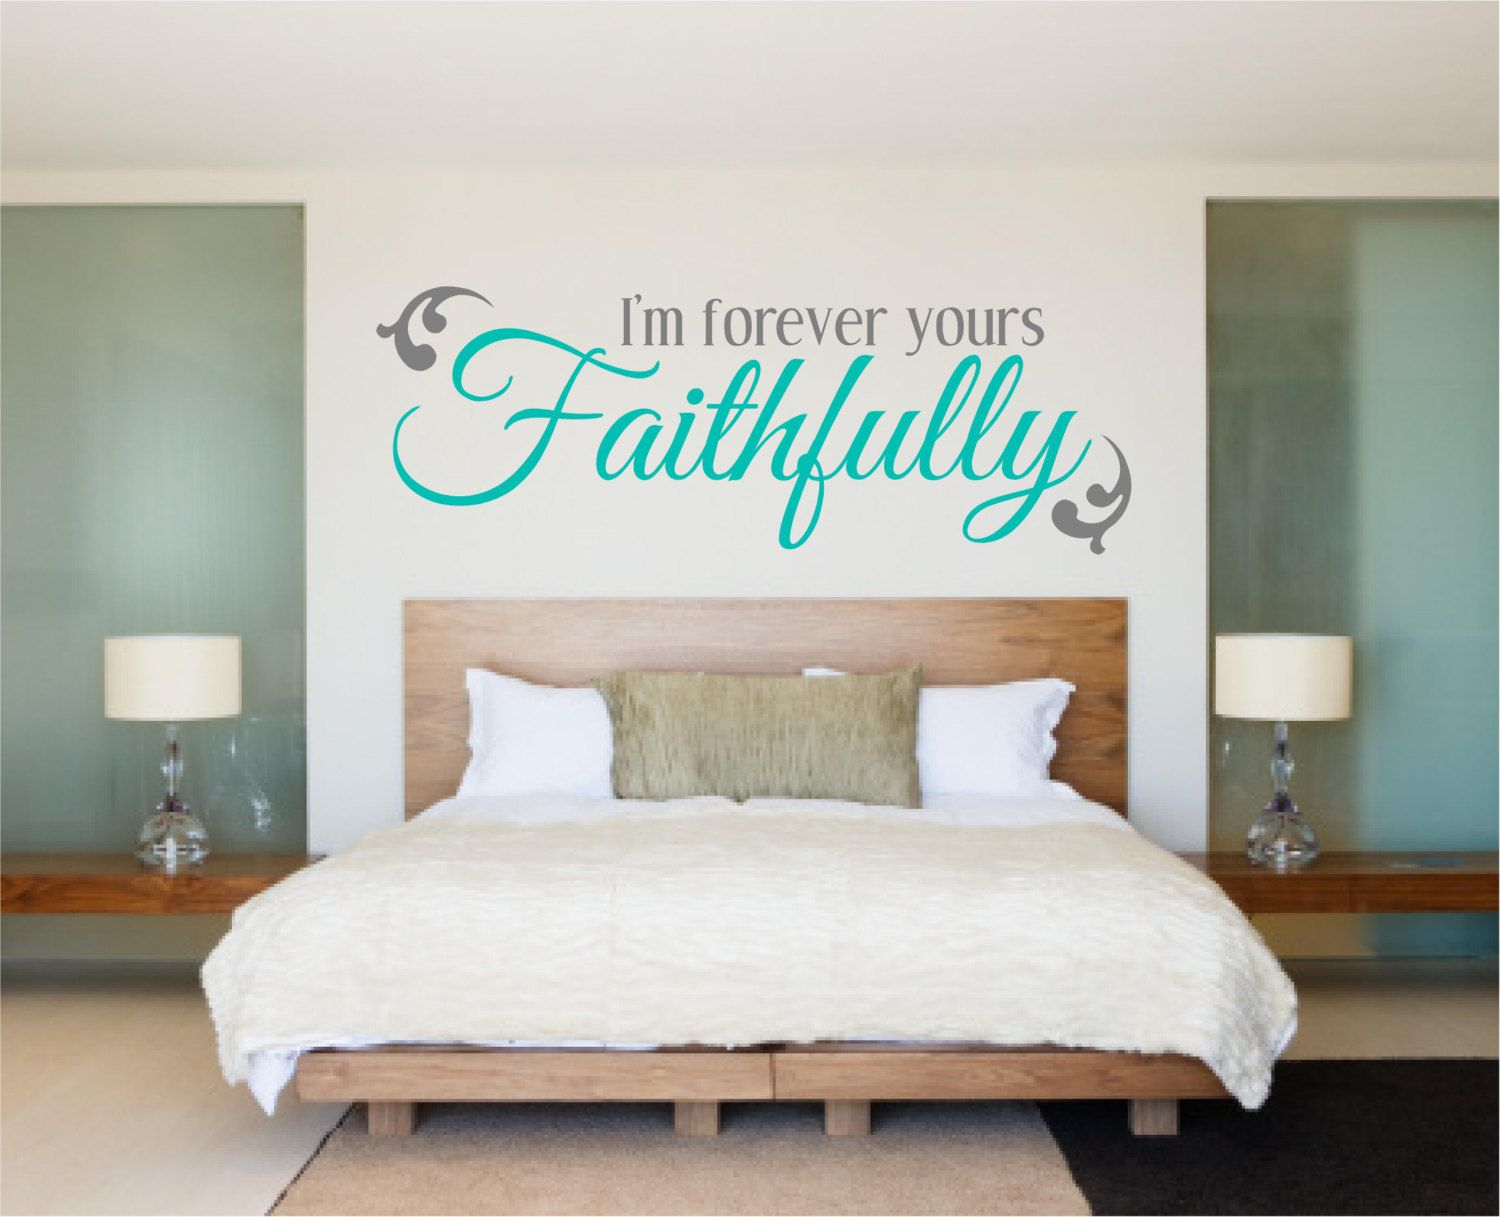 Bedroom Decal Bedroom Wall Decal Love Decal Iu0027m By Luxeloft, $19.00